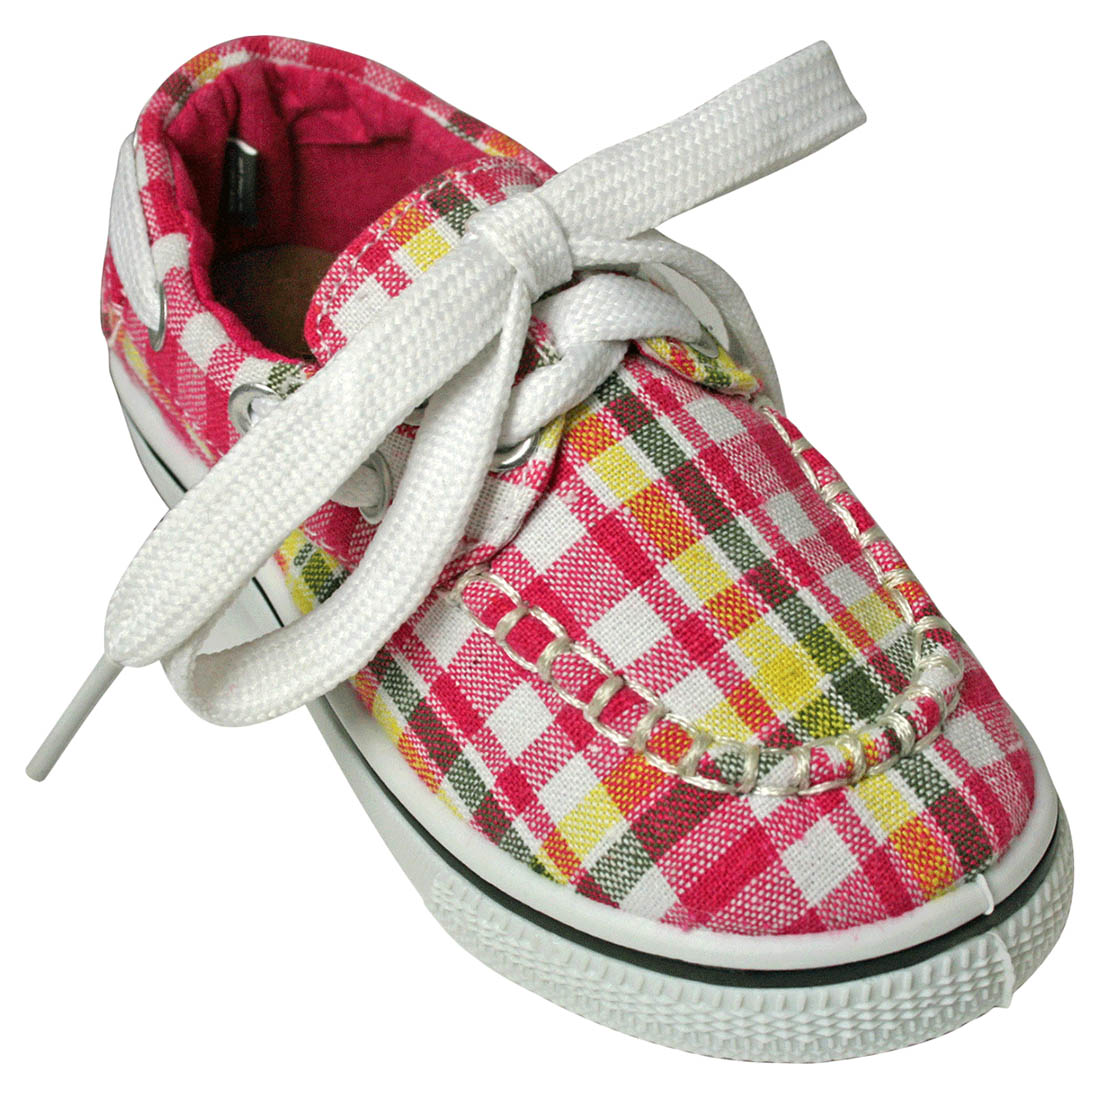 Girls' Kaymann Boat Shoes